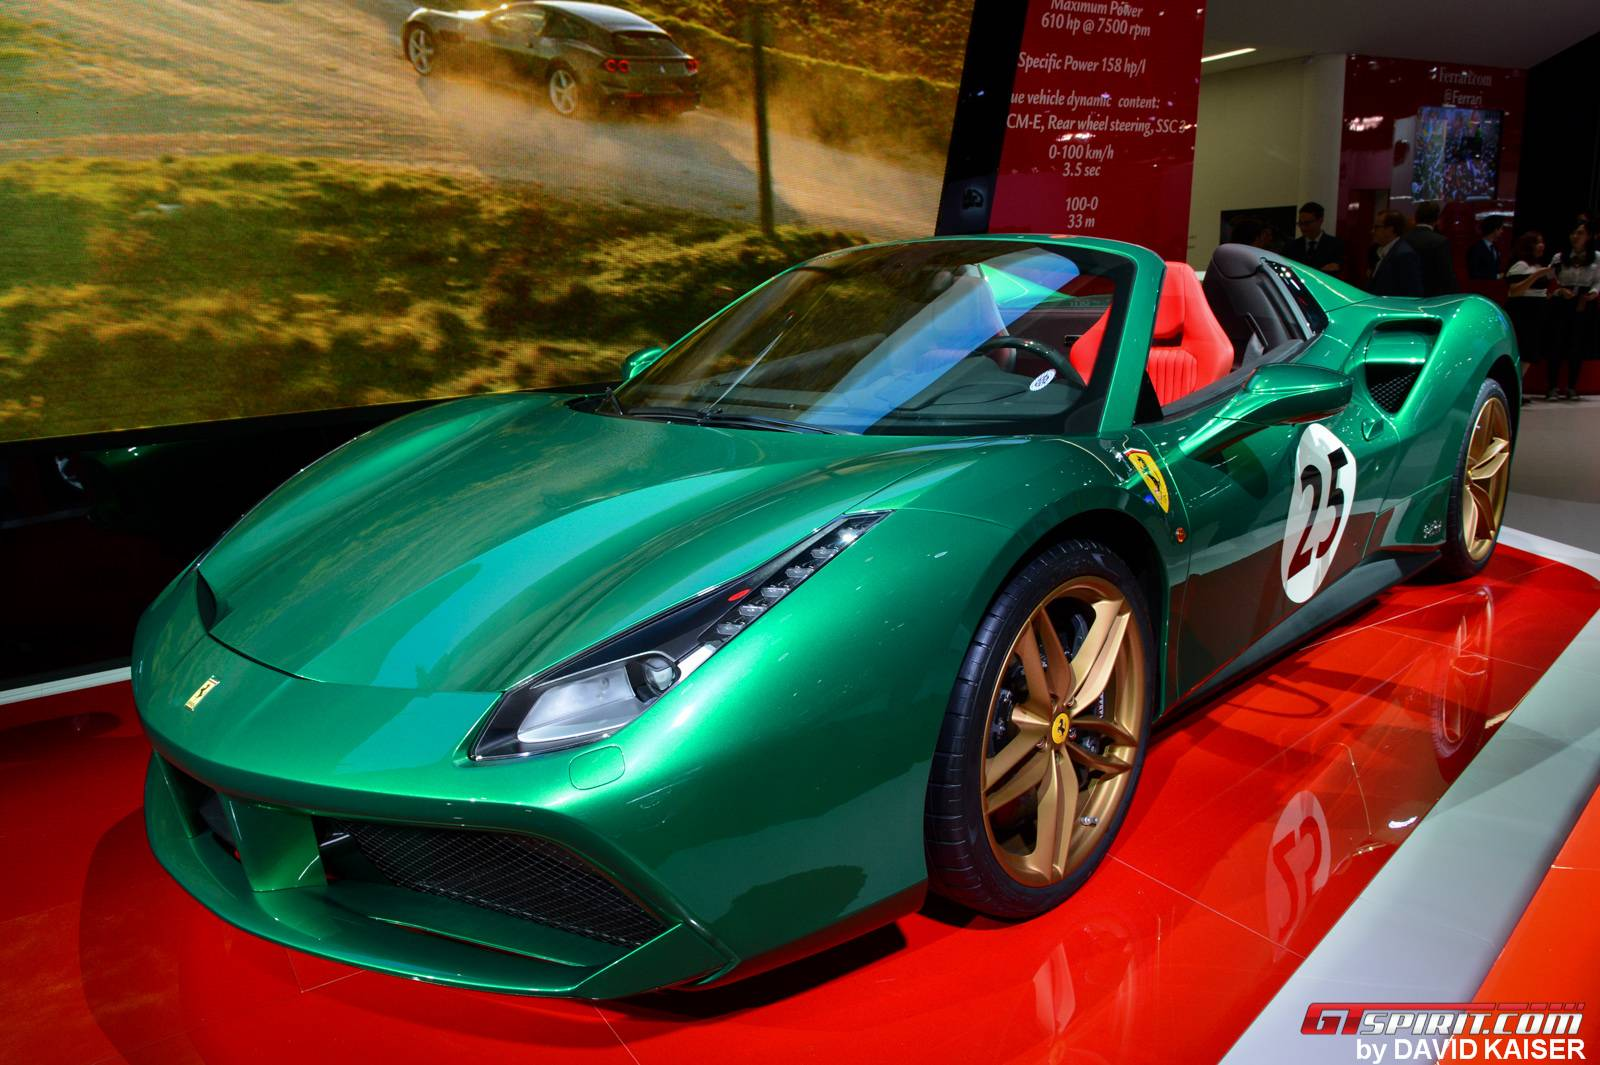 Paris 2016 Ferrari 488 Spider The Green Jewel Gtspirit